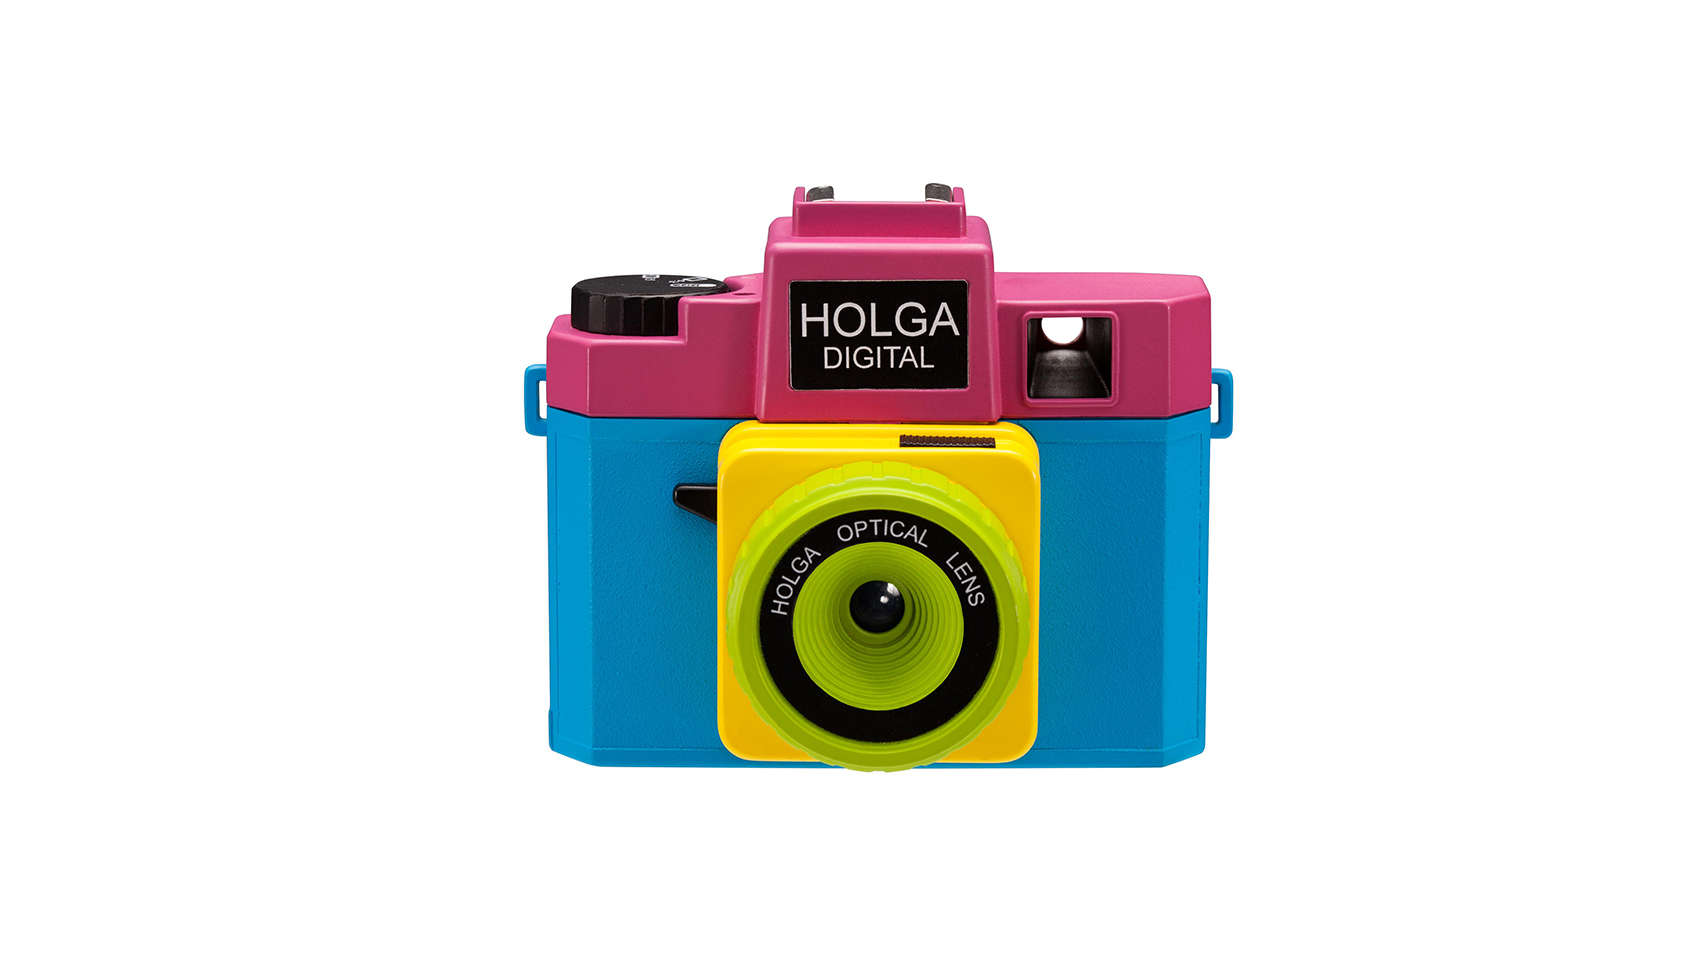 The Holga, a favored toy camera of artists and photographers, will have a digital model thanks to Kickstarter.